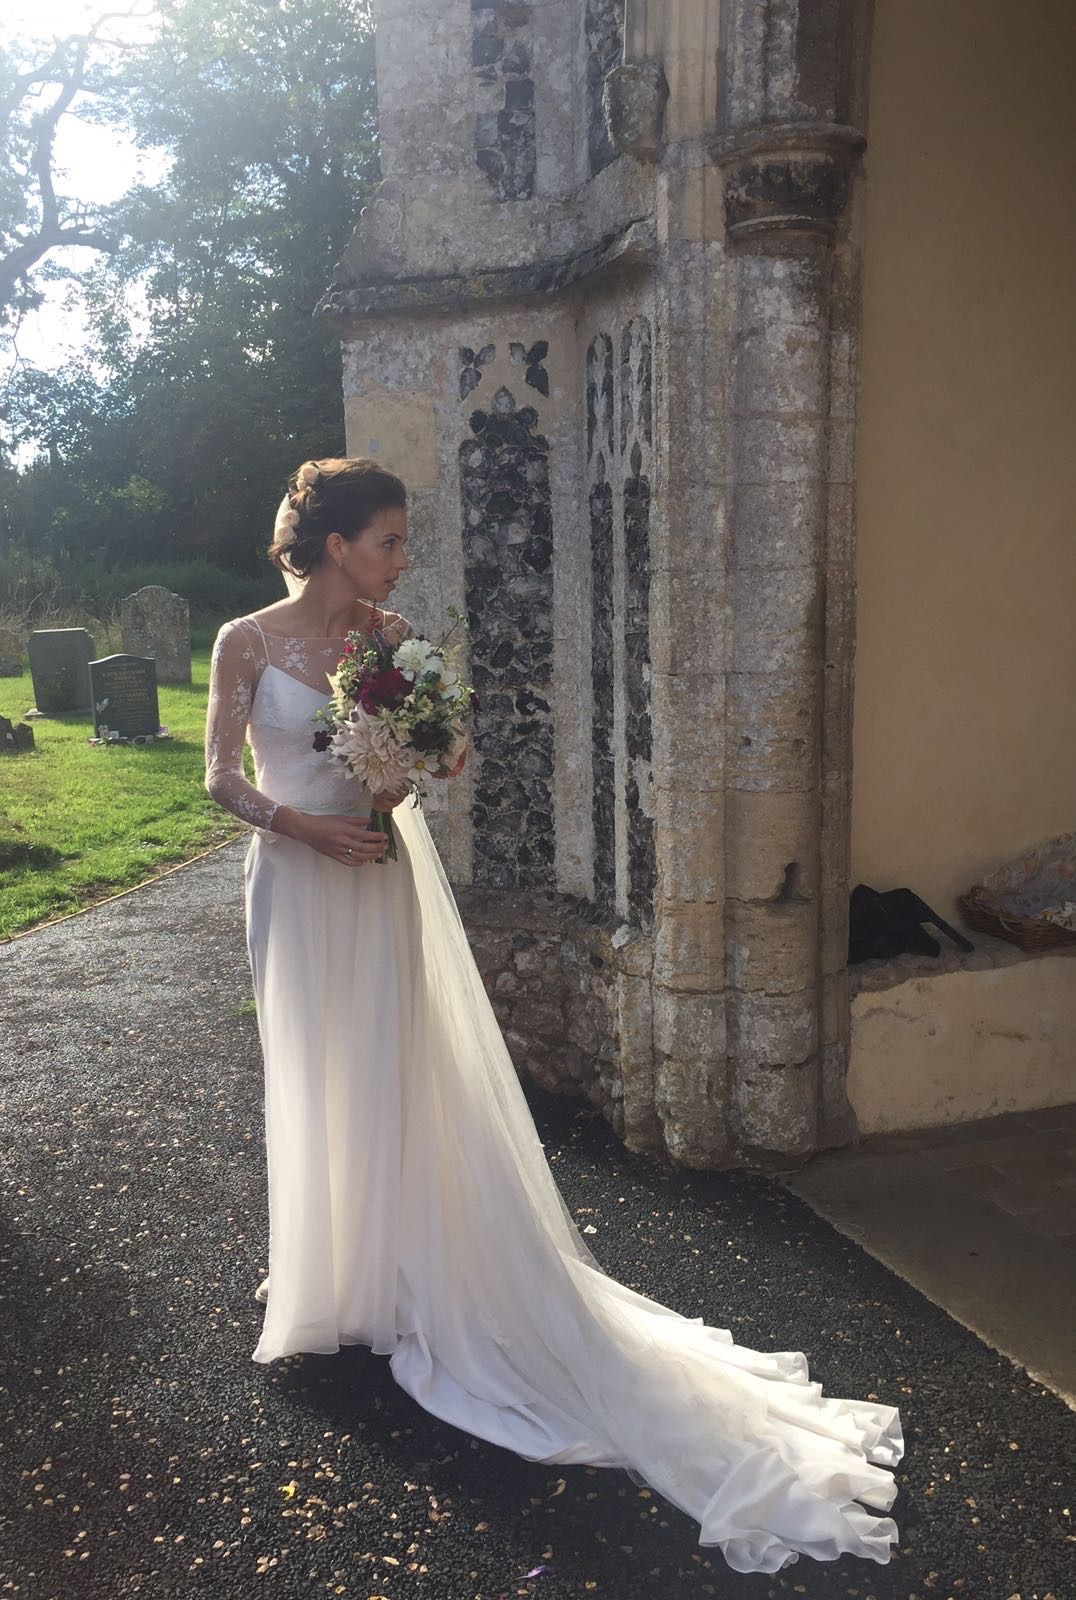 Chessie, make-up and hair by Fenella St John, tying the knot.